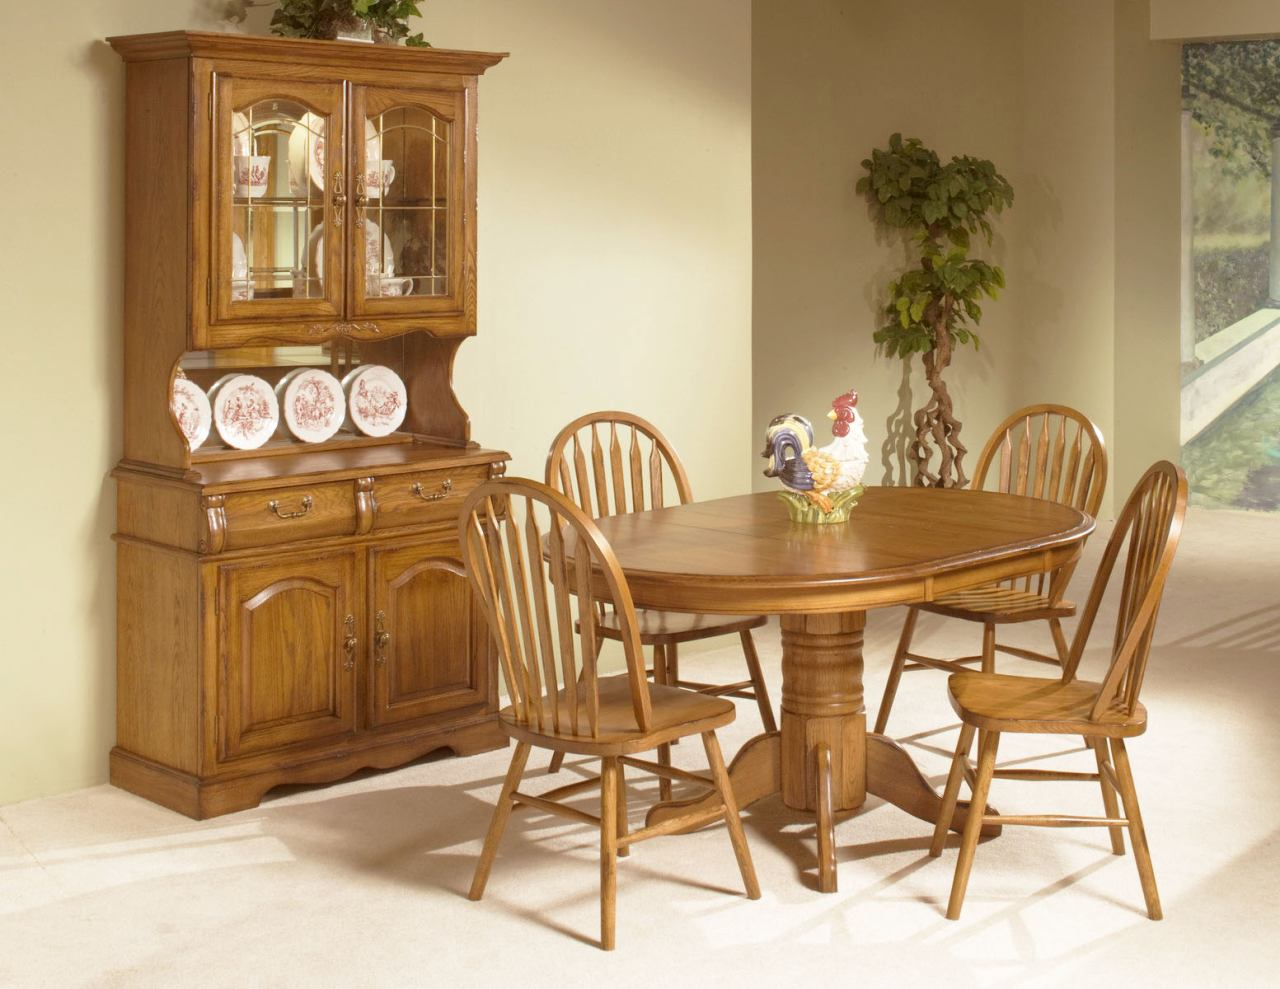 Intercon Furniture Classic Oak 7 Piece Solid Pedestal Dining Room Set In Chestnut